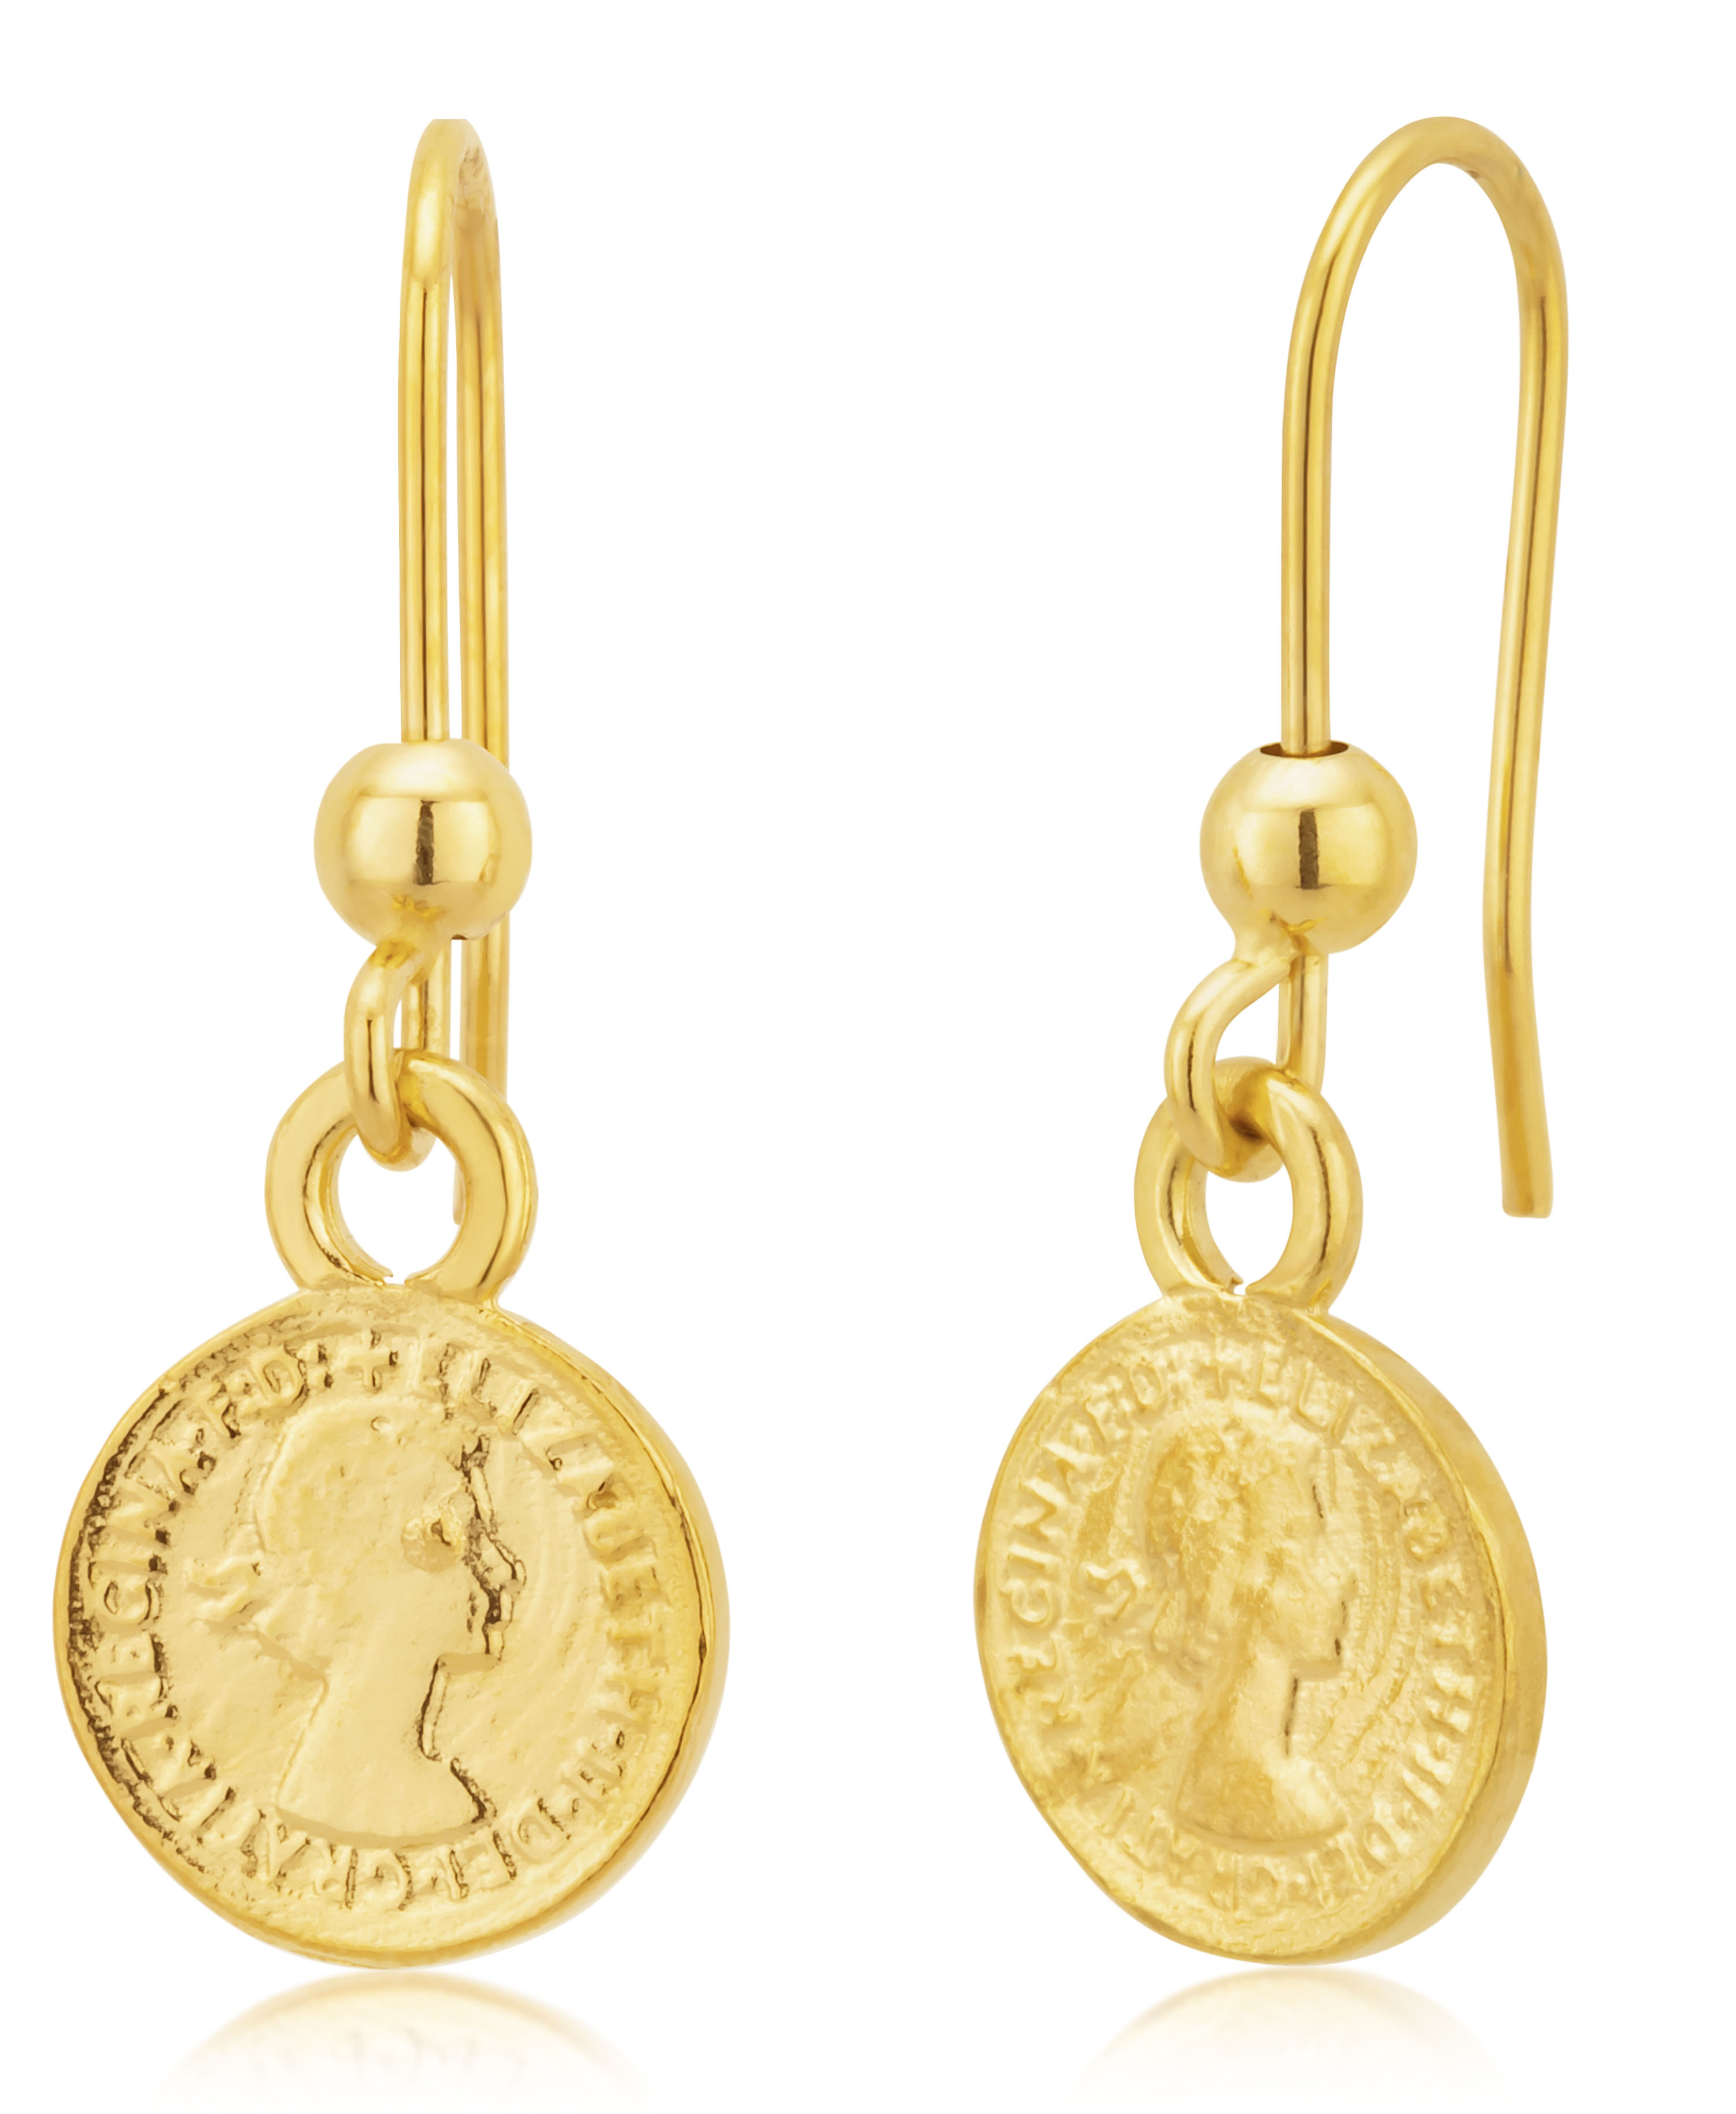 9ct Yellow Gold Sovereign Coin Drop Hook Earrings